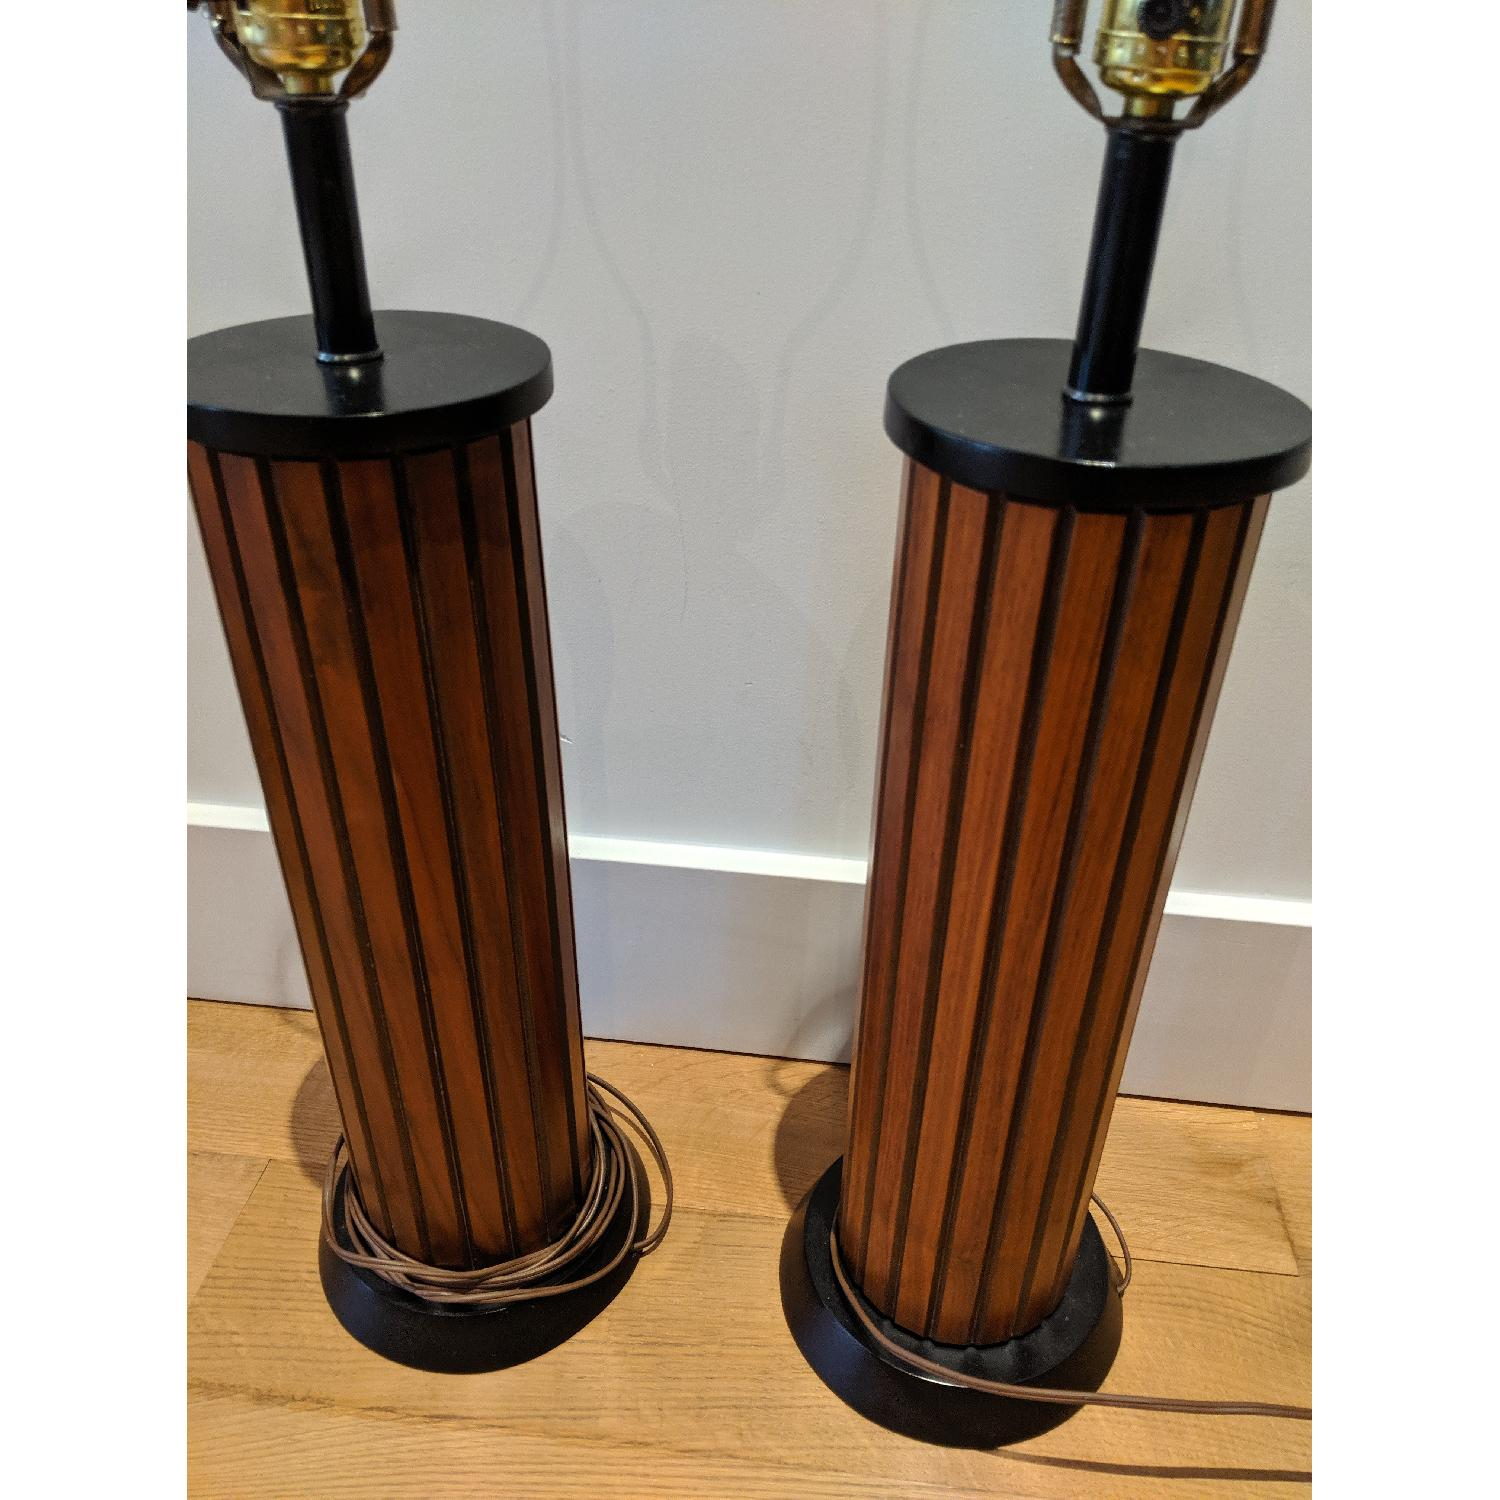 Vintage Mid Century Modern Lamps - image-3